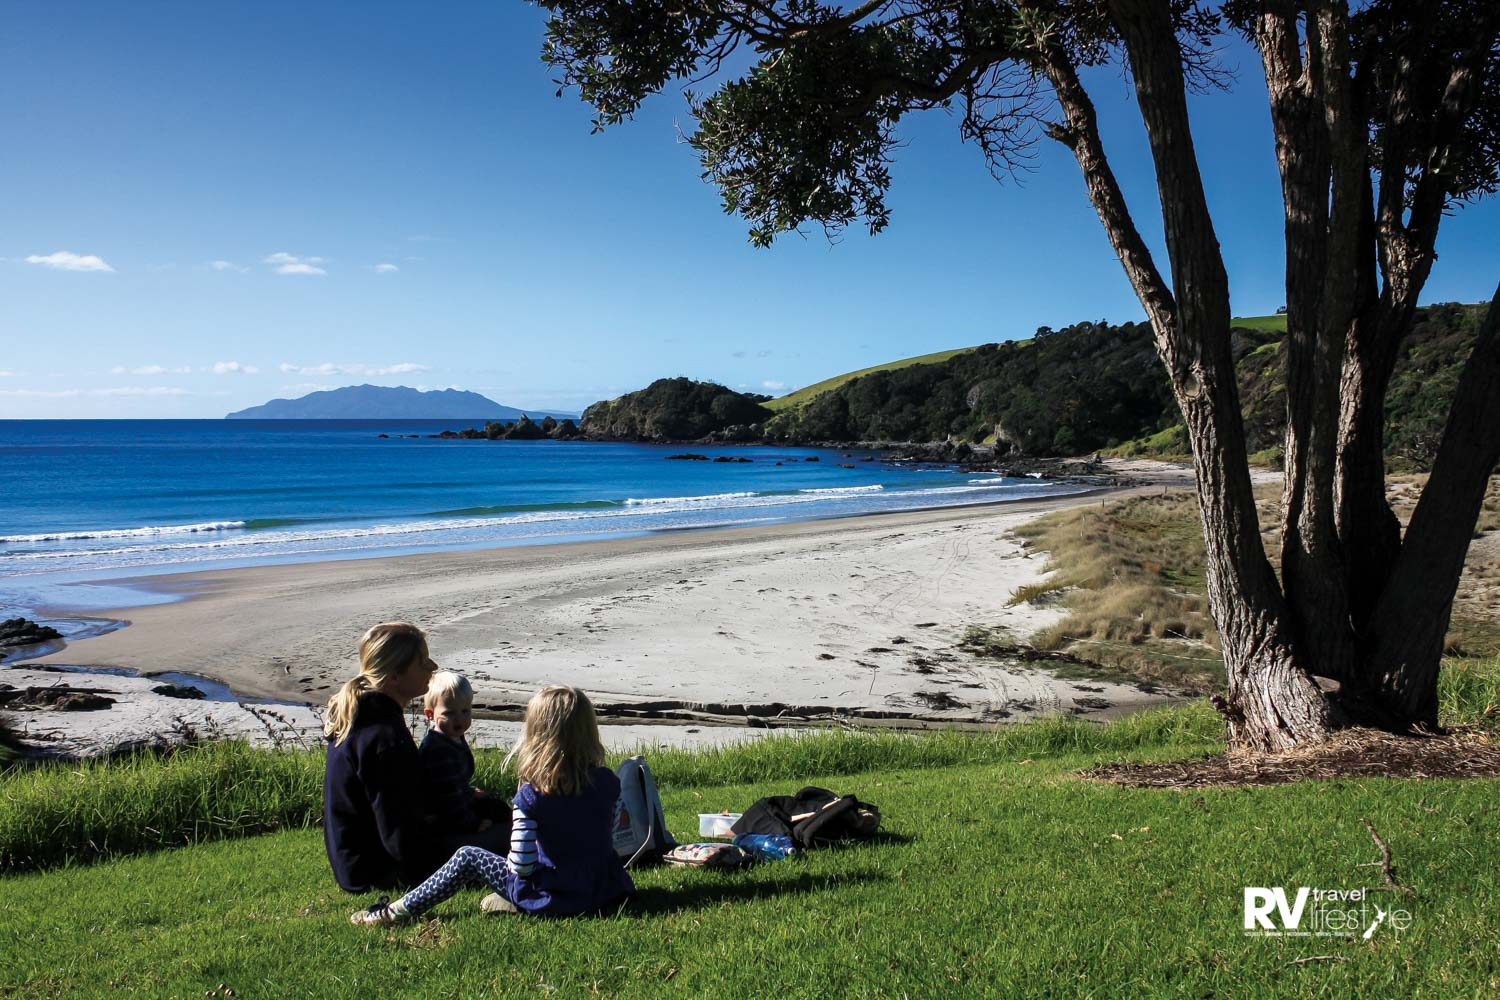 Picnic spots can easily be found on the picturesque peninsula